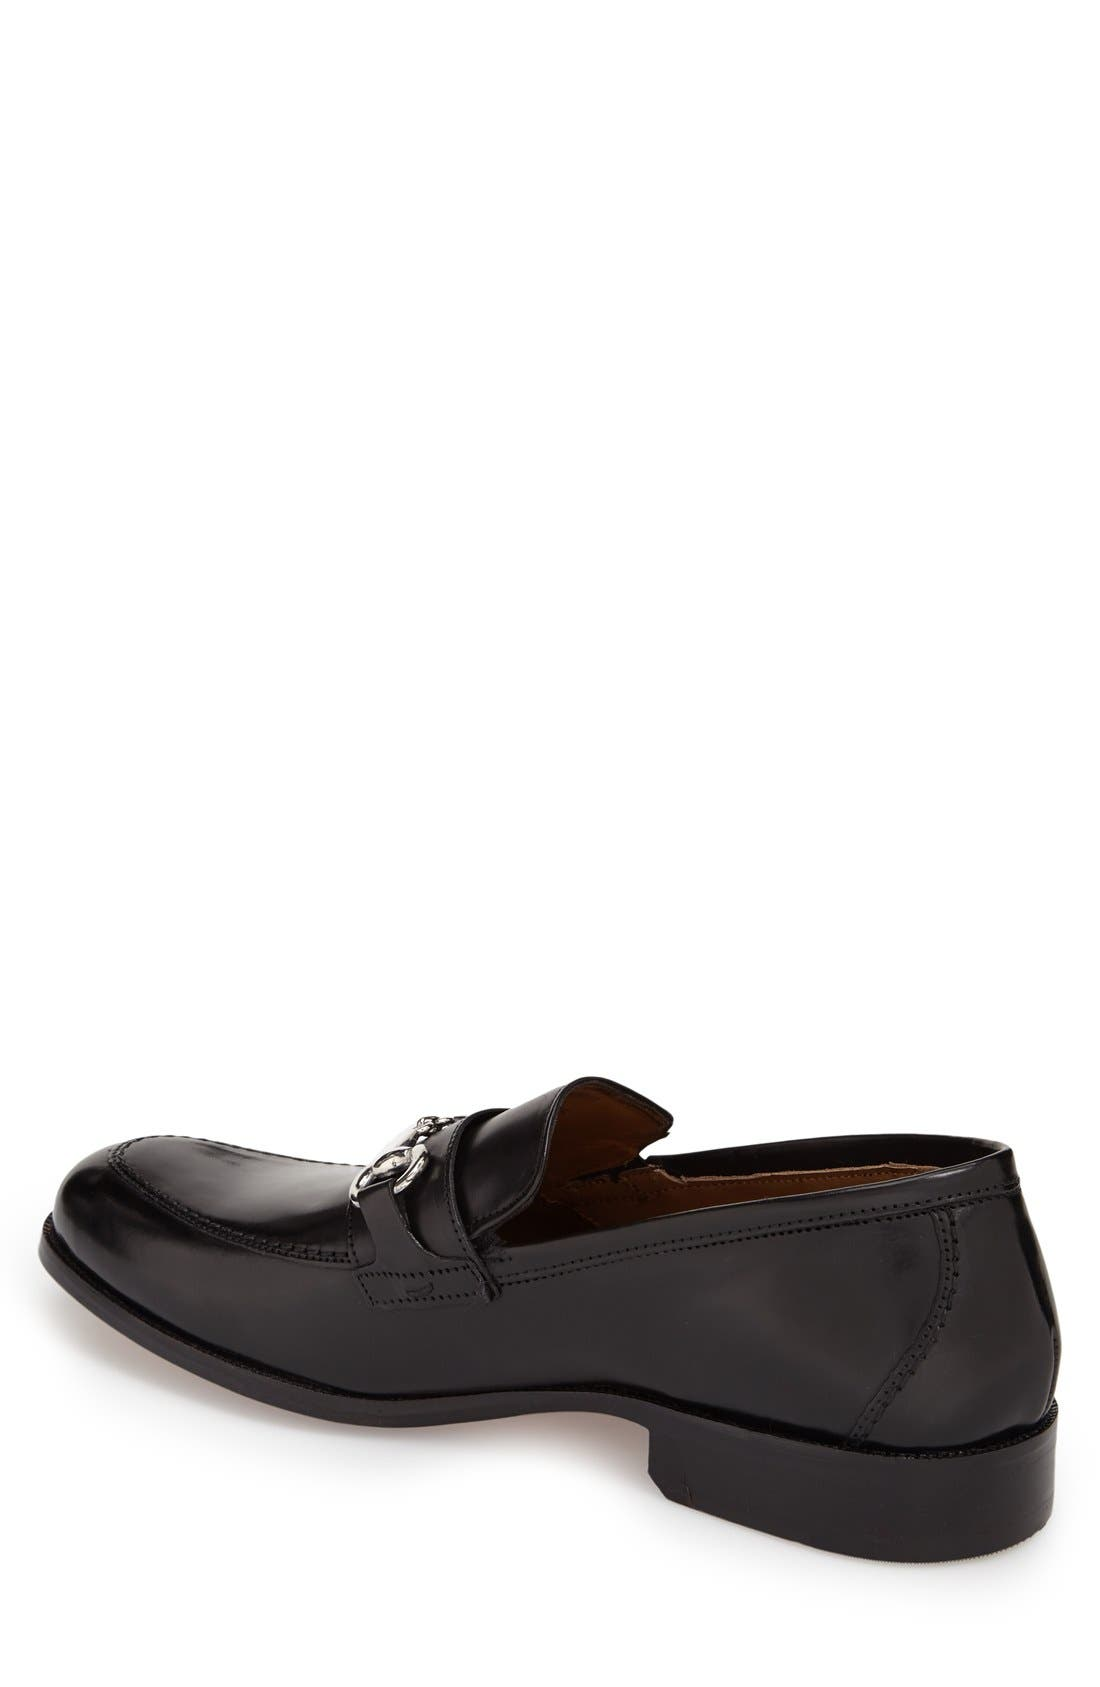 'Stratton' Bit Loafer,                             Alternate thumbnail 2, color,                             Black